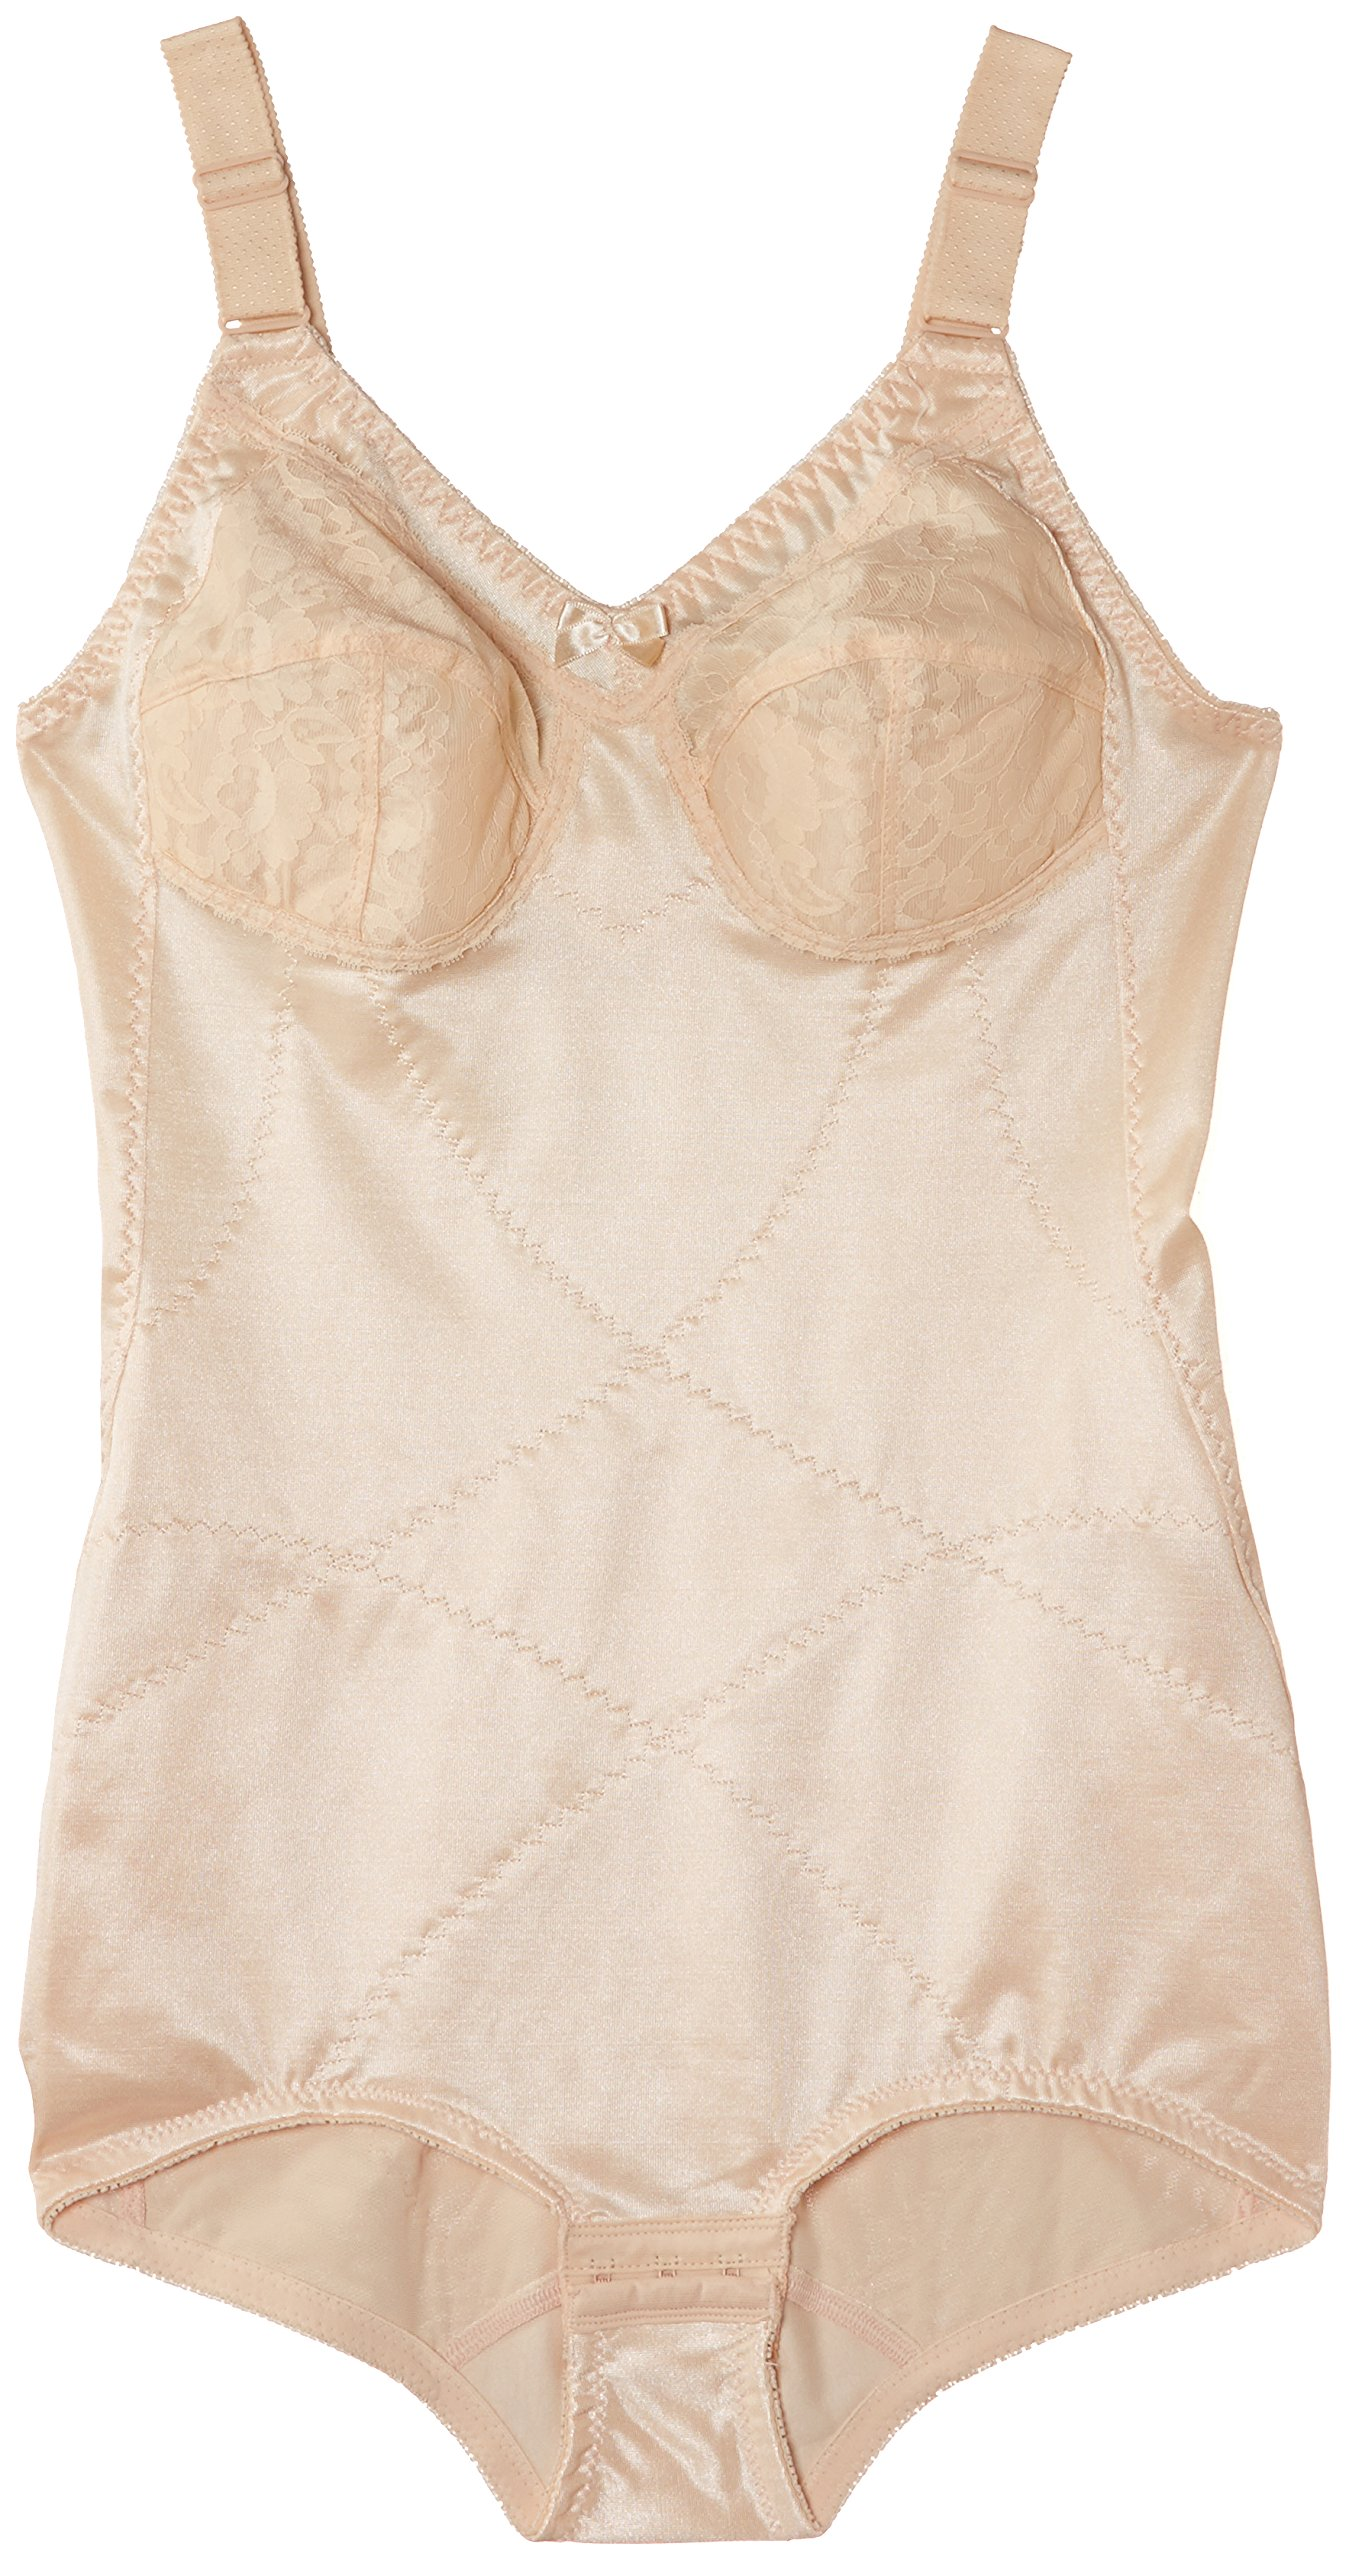 Support Fabricant38cFemme Naturana BodyBeige100ctaille Undercup Corselette 0kX8nwPO